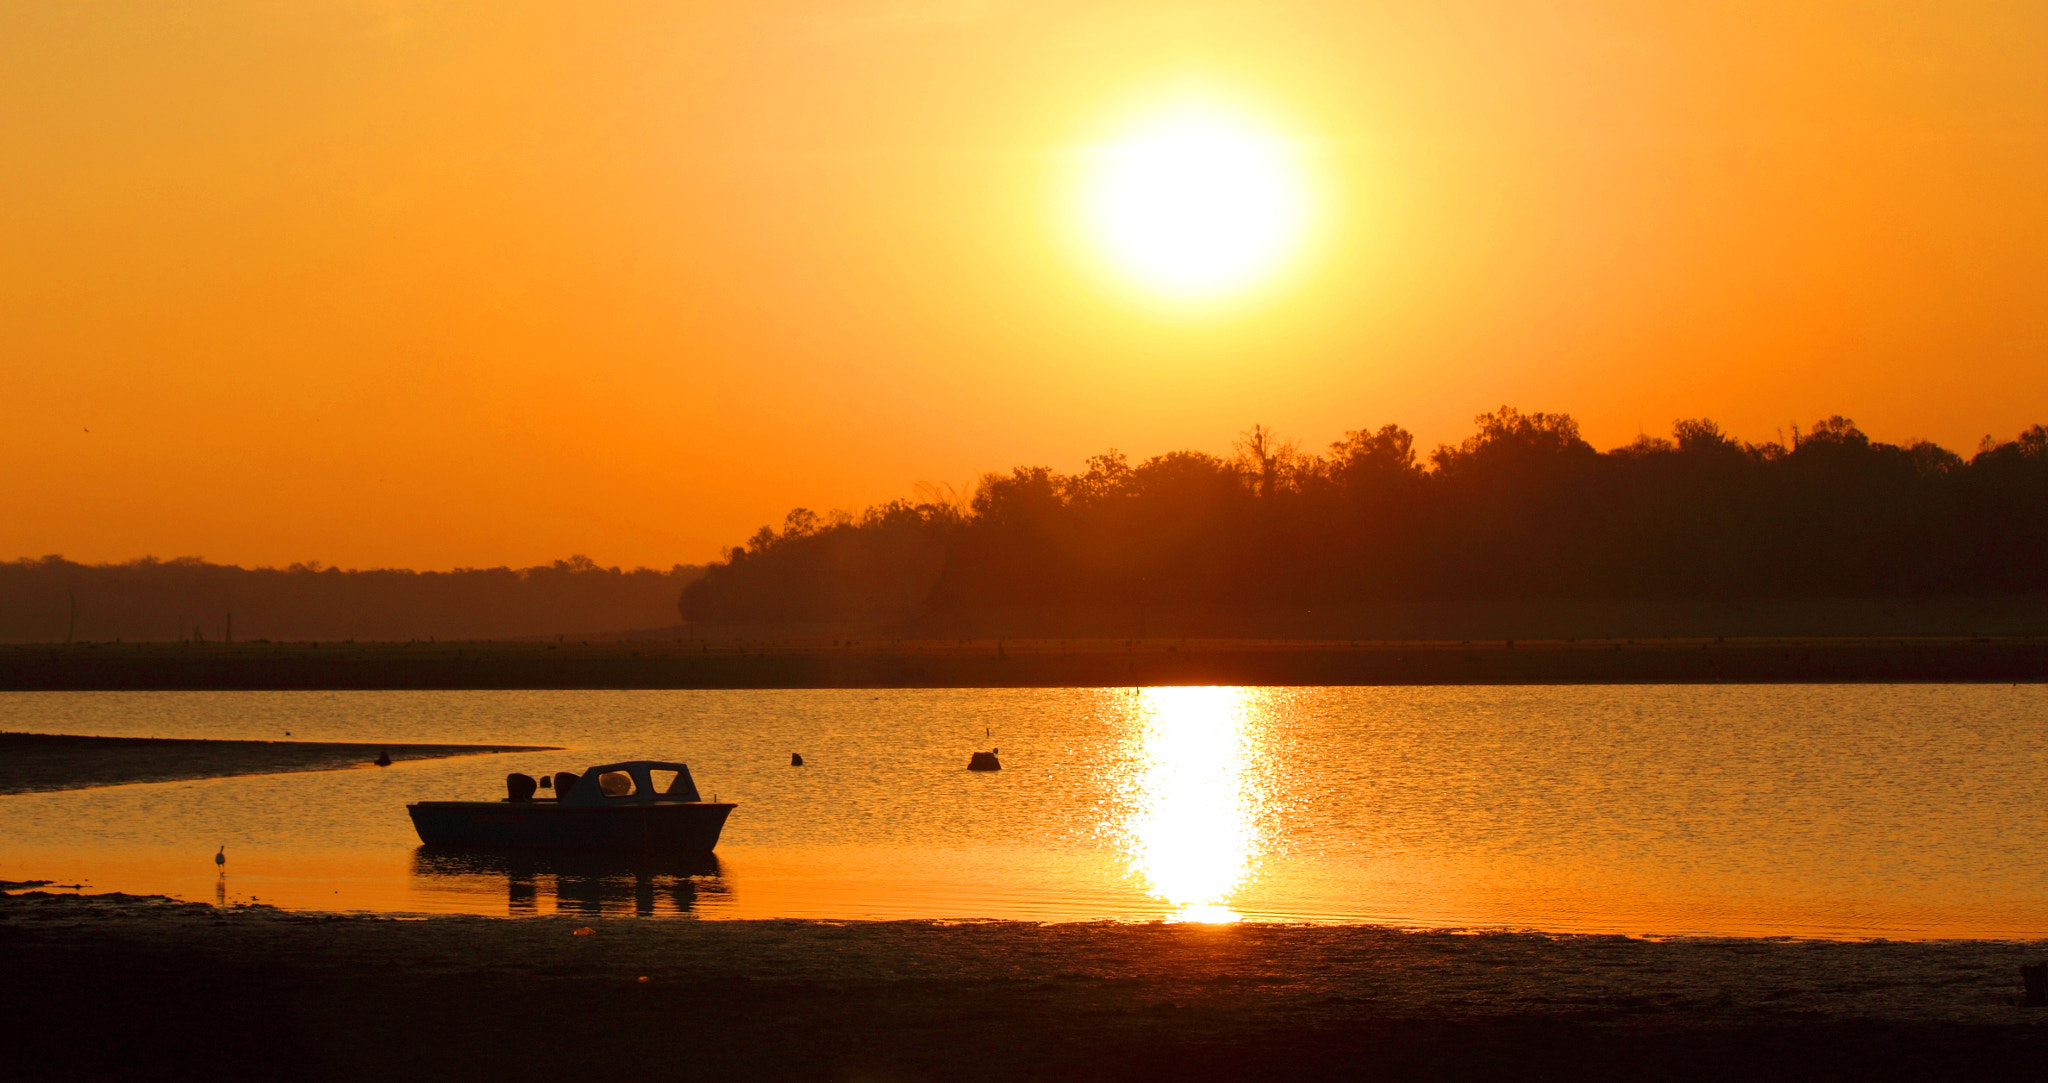 Photograph Golden Sunset @ Kabini River by udhay krishnamurthy on 500px